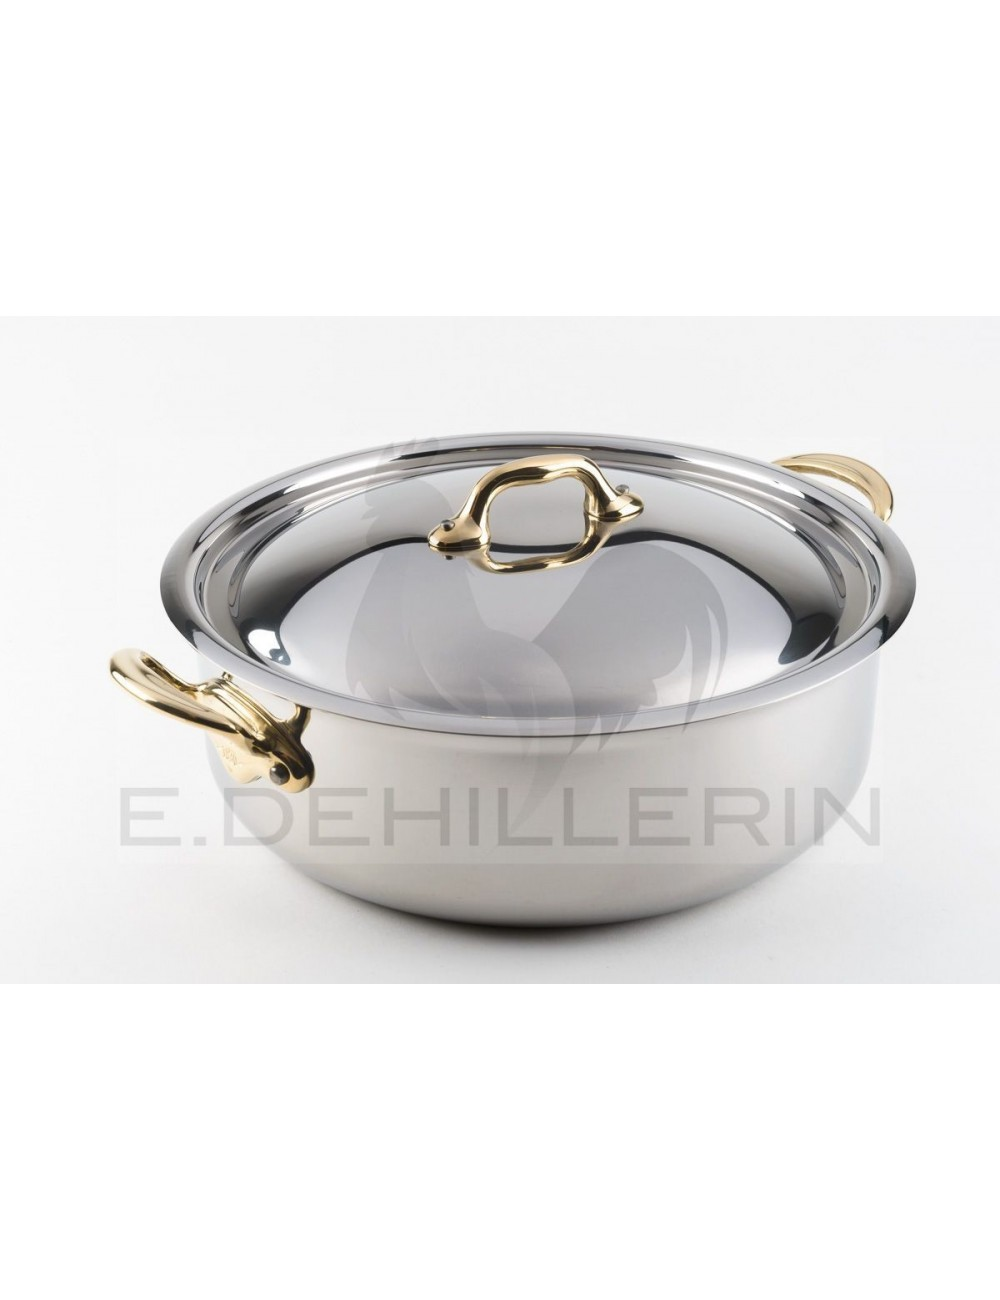 Plat a sauter induc 39 inox poignees avec couvercle for Plat cuisson inox